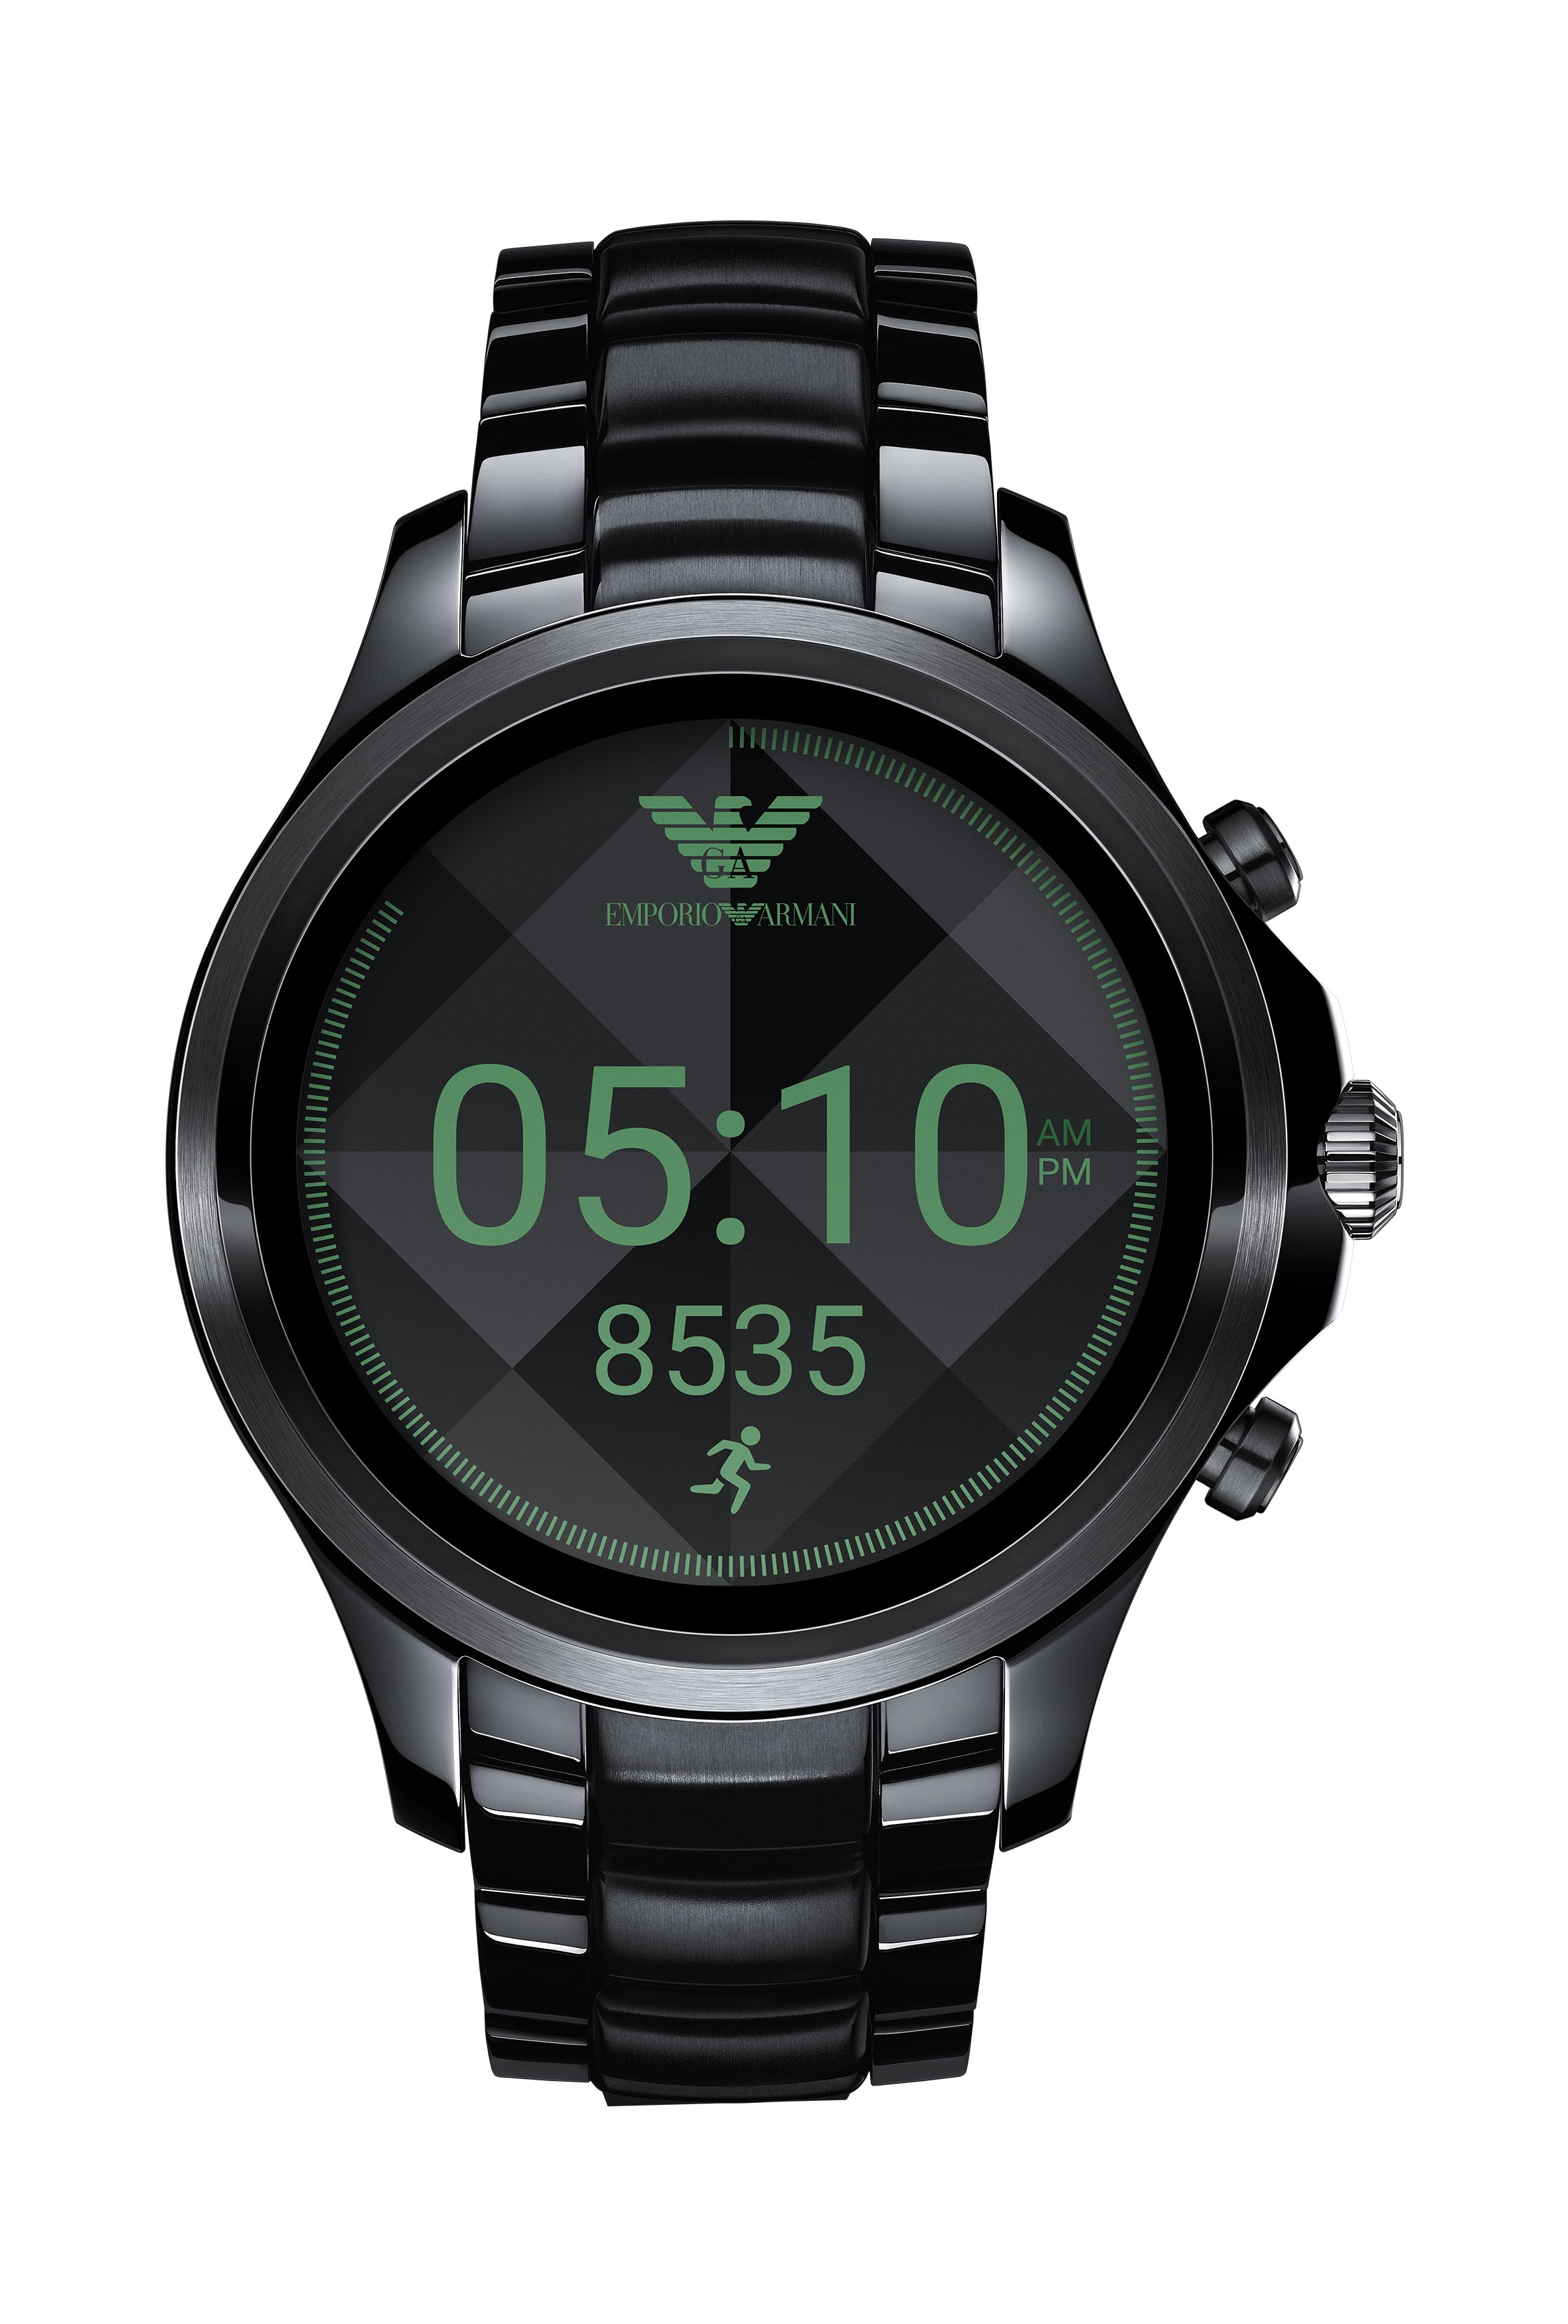 Emporio Armani's first touchscreen smartwatch